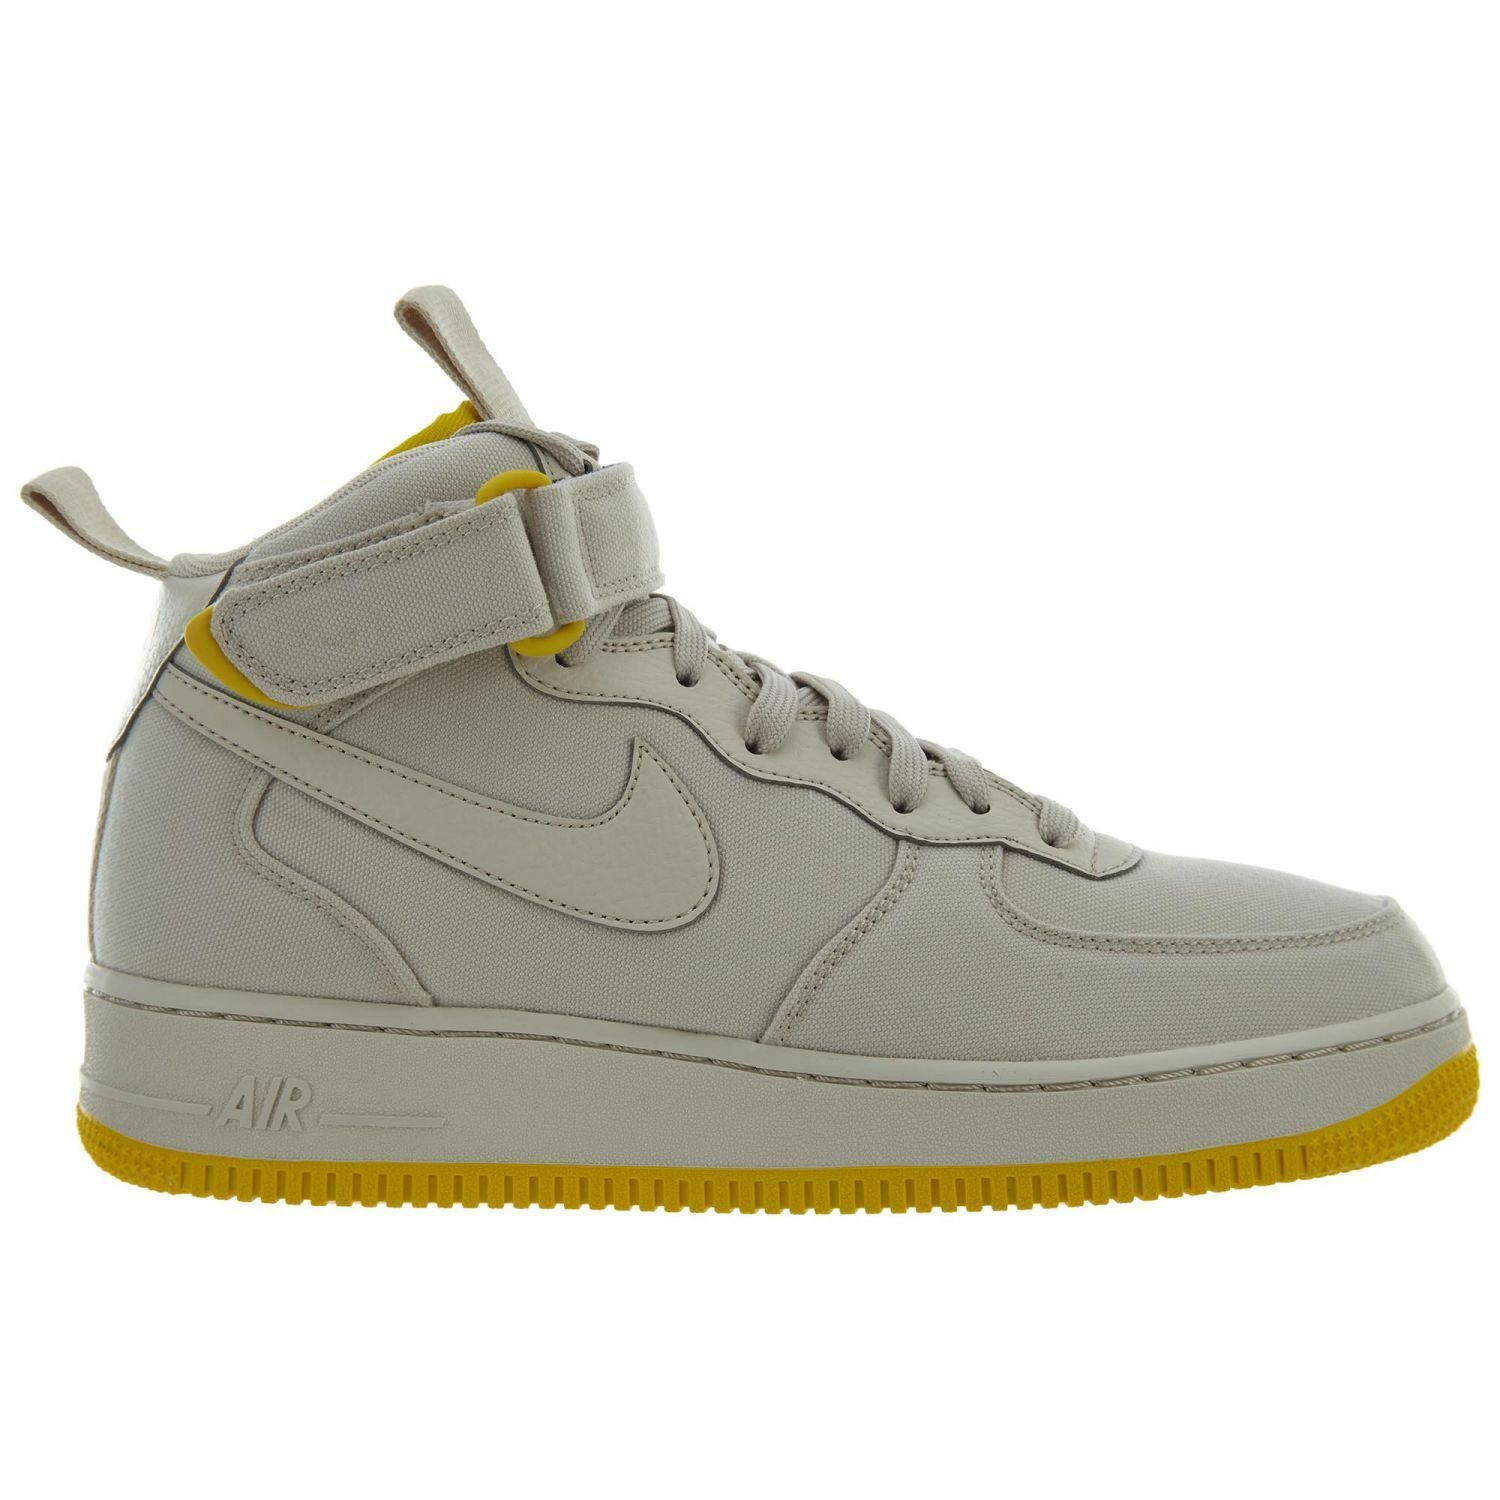 Nike Air Force 1 Mid Canvas Mens AH6770-002 Desert Sand Sulfur Shoes Size 7.5